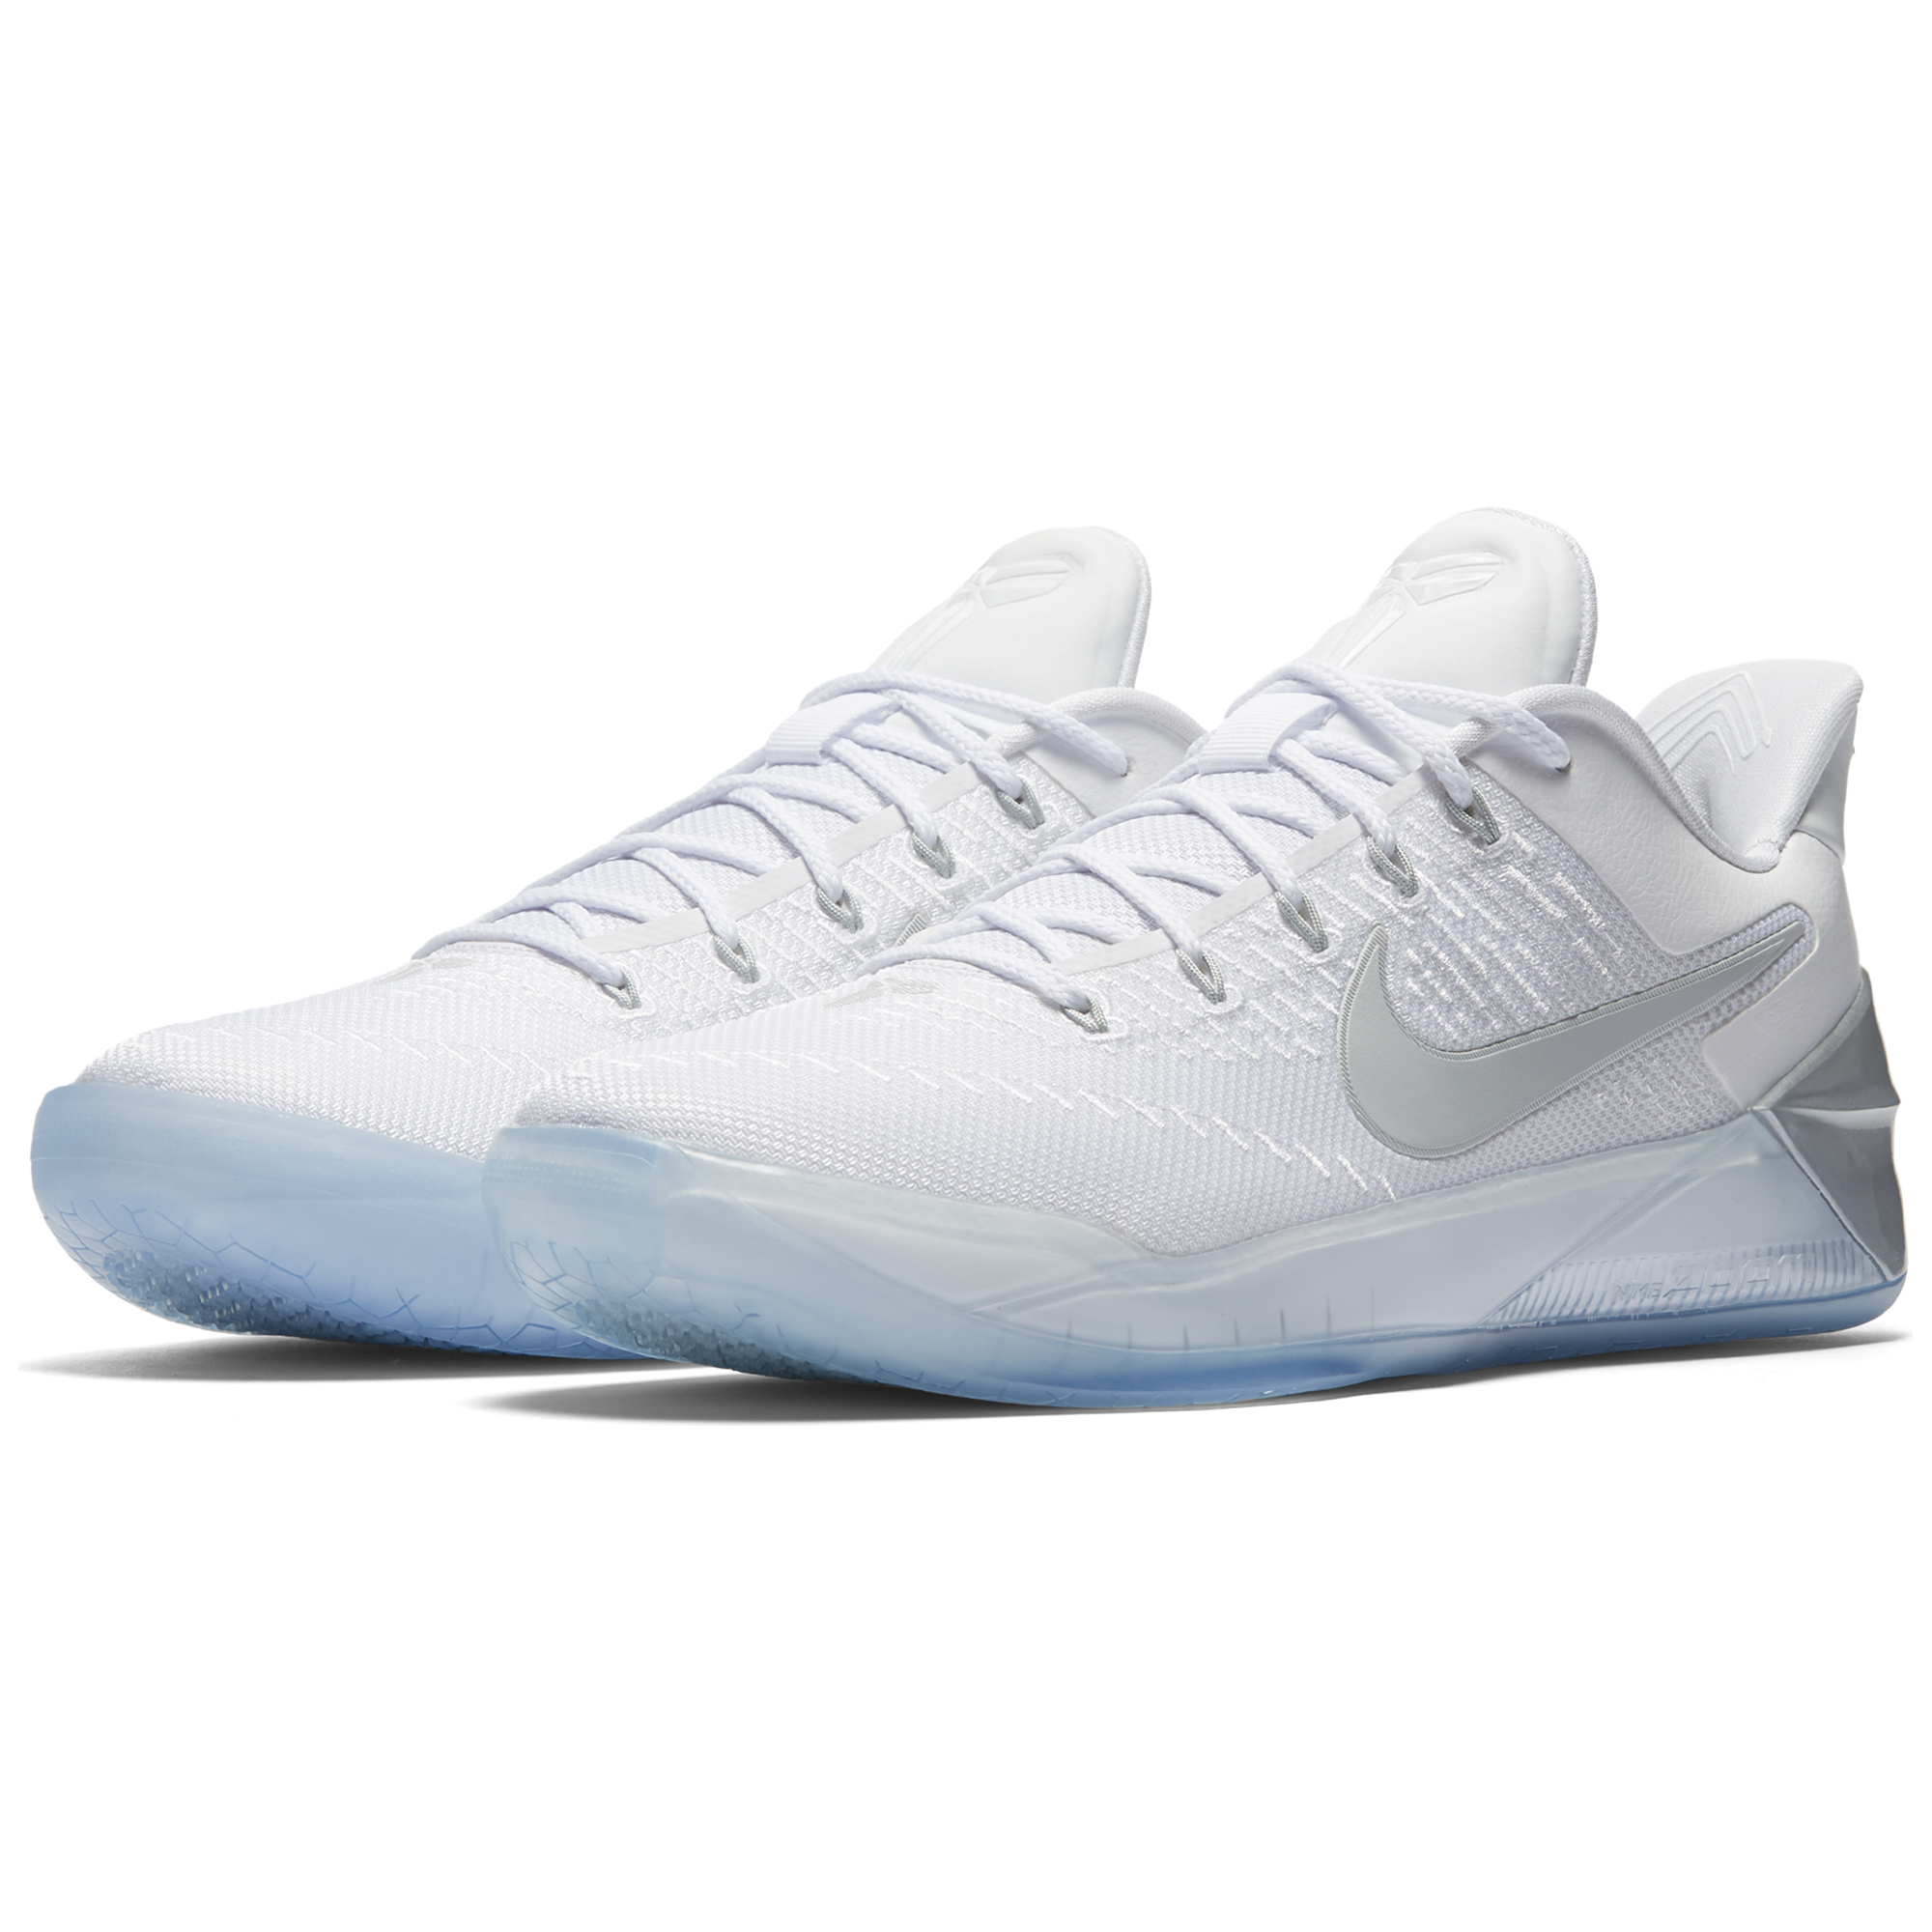 Nike Kobe AD Basketball Shoe - White / Chrome